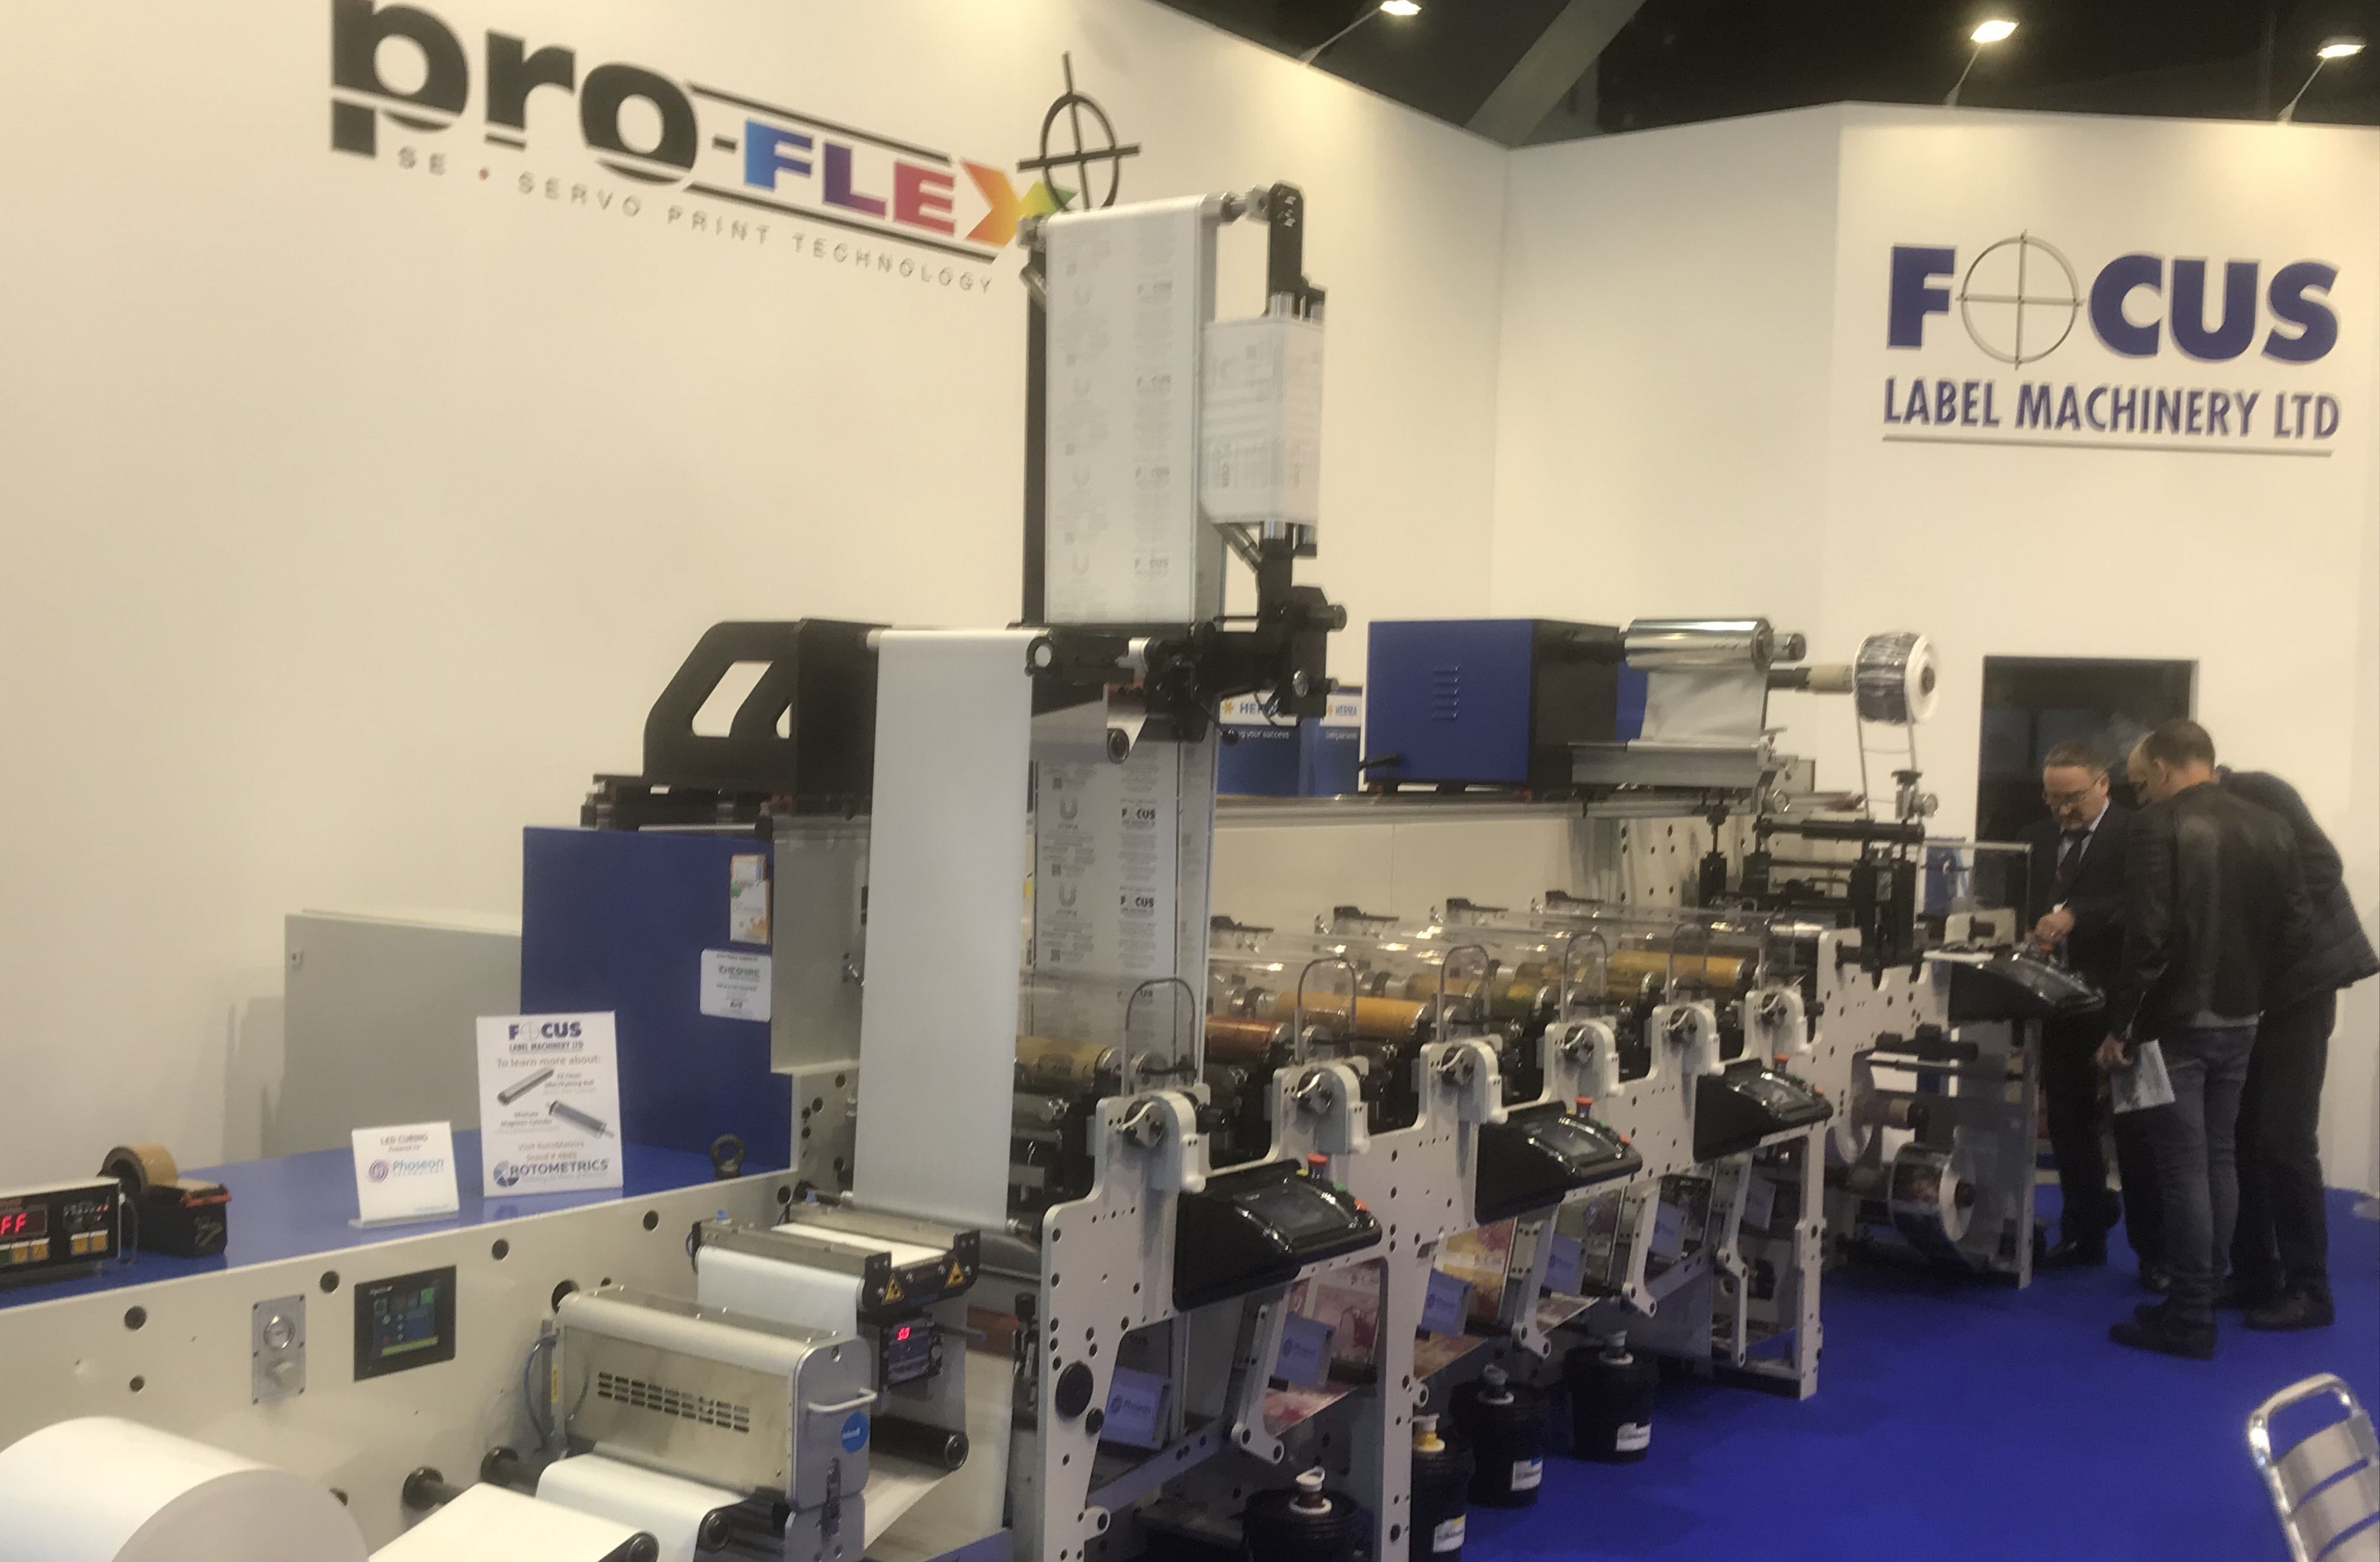 Product Profile Proflex Series (1)